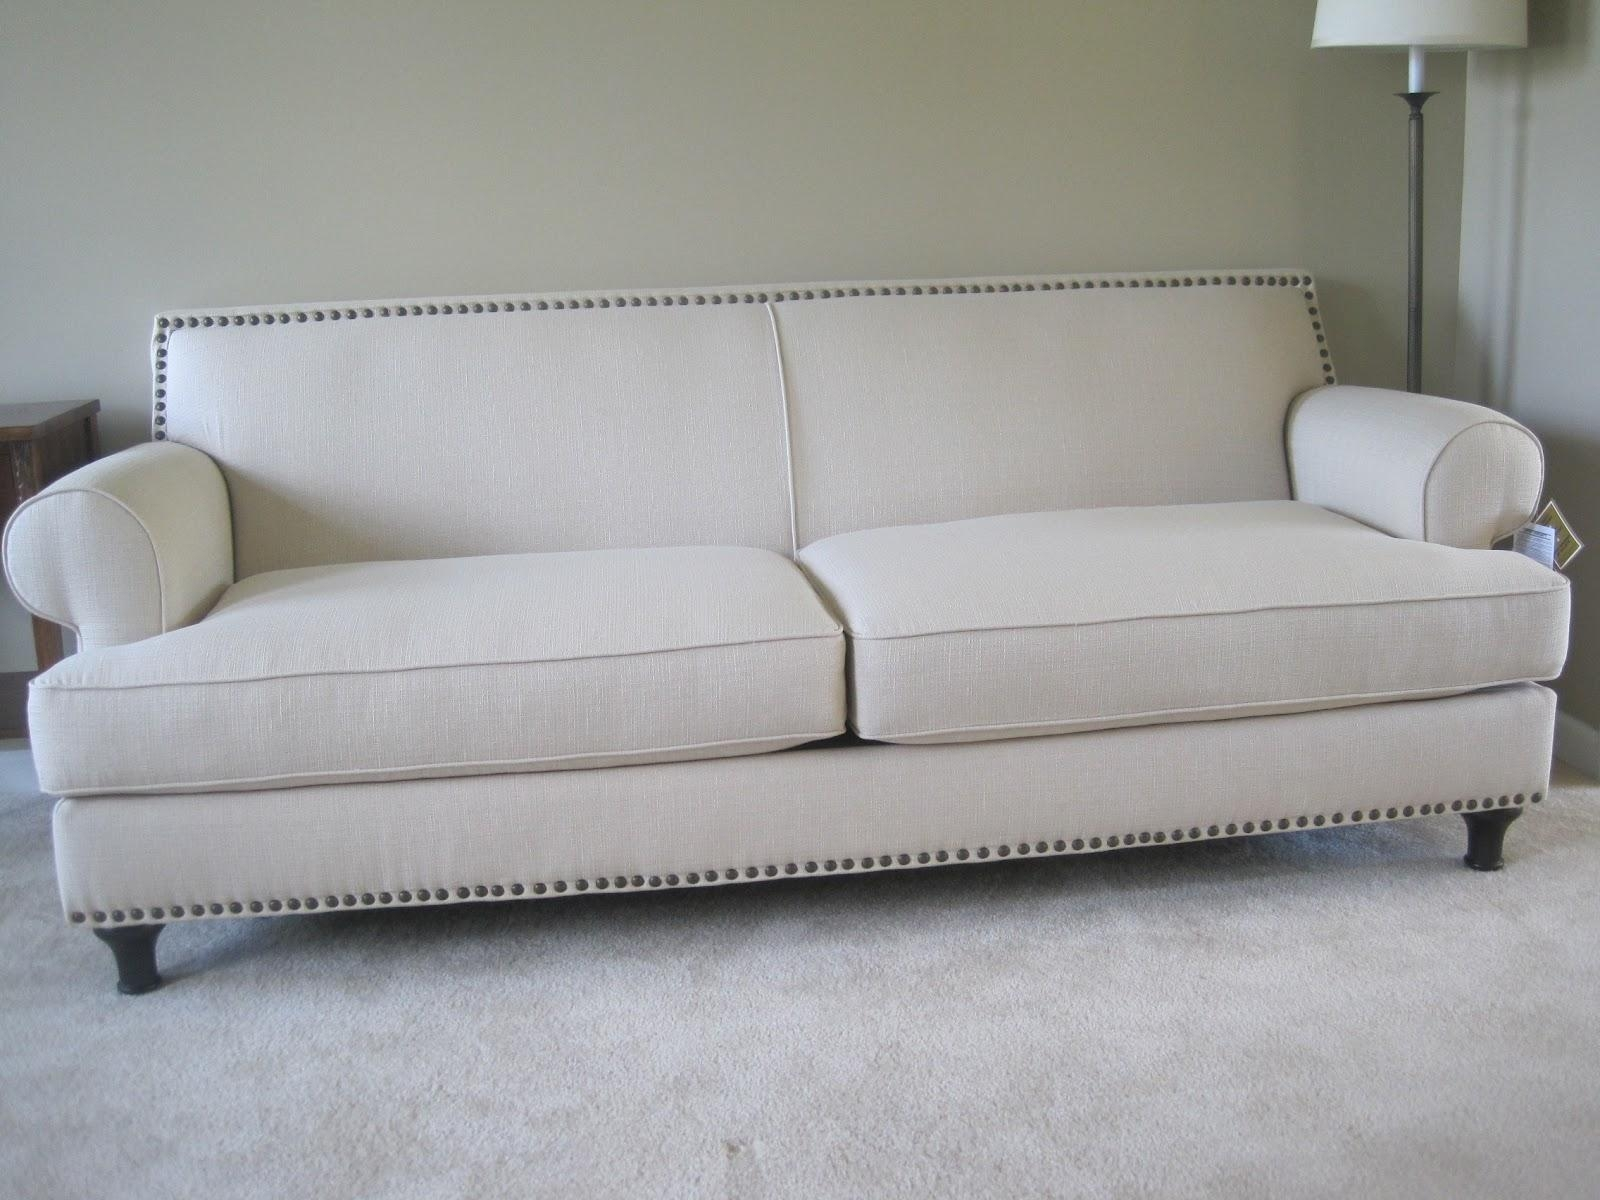 Designed To Dwell: So Fa Ortunate! With Pier 1 Carmen Sofas (Image 9 of 20)